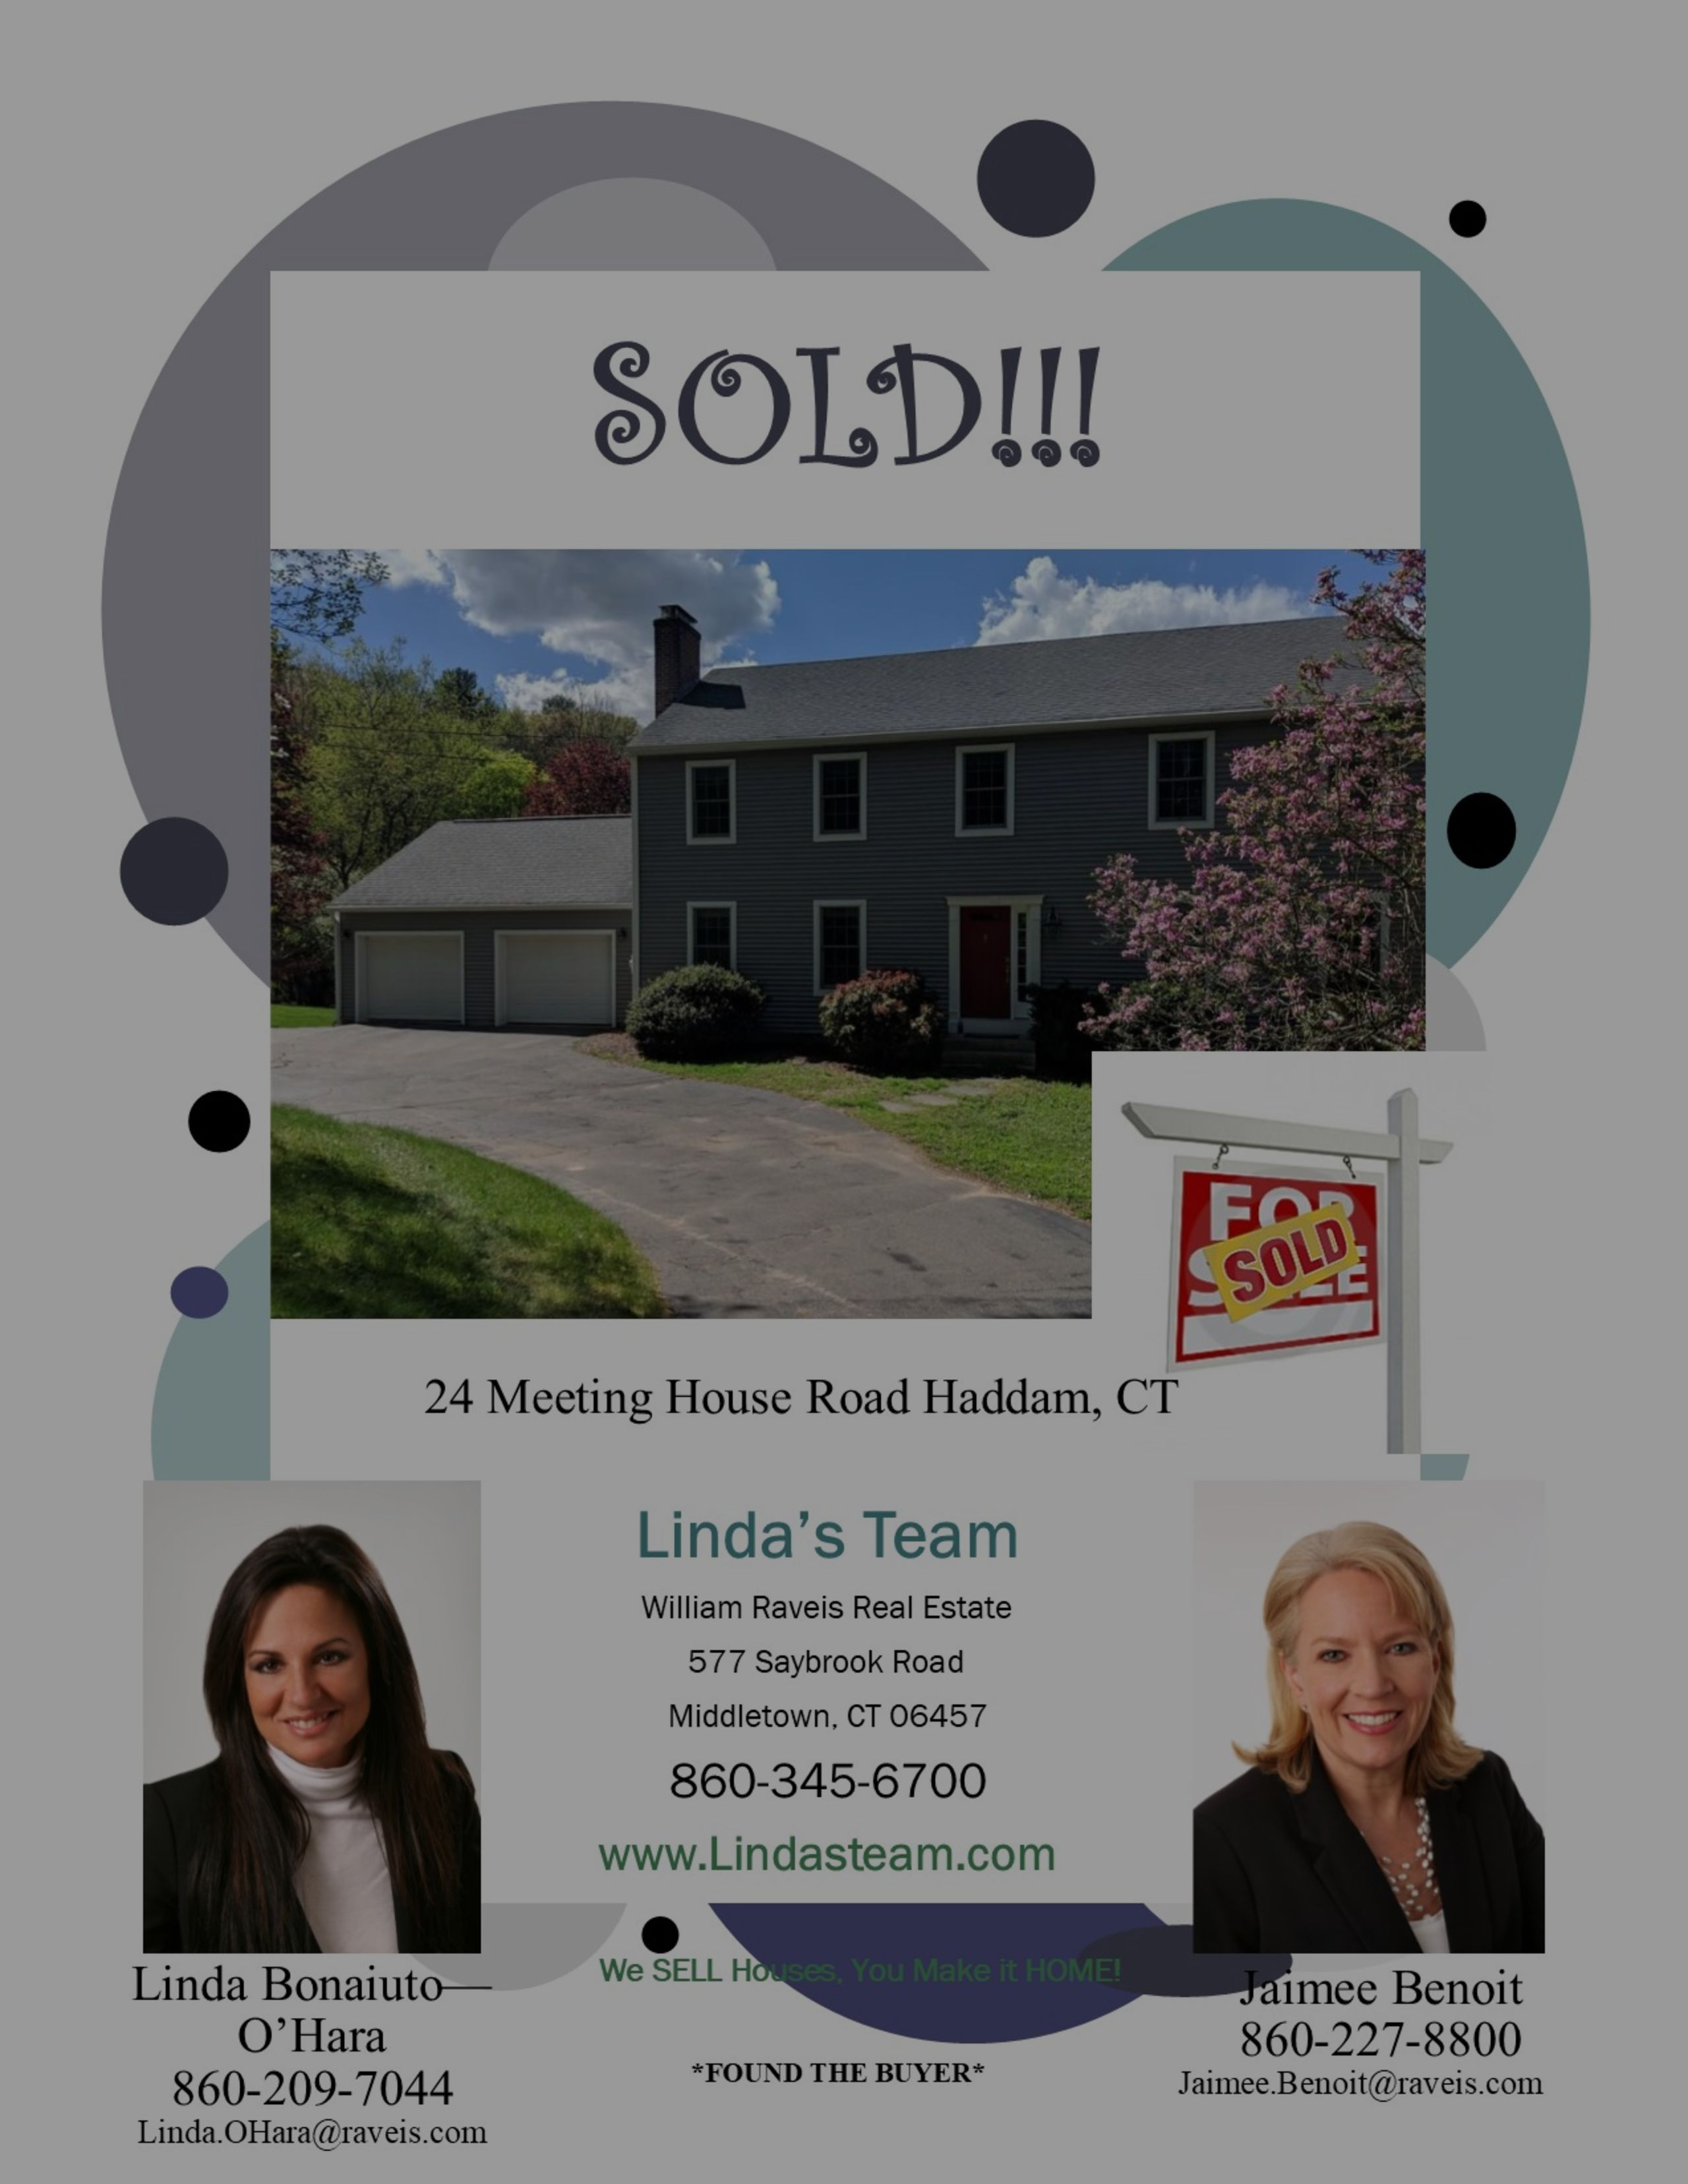 Found the Buyer in Haddam!